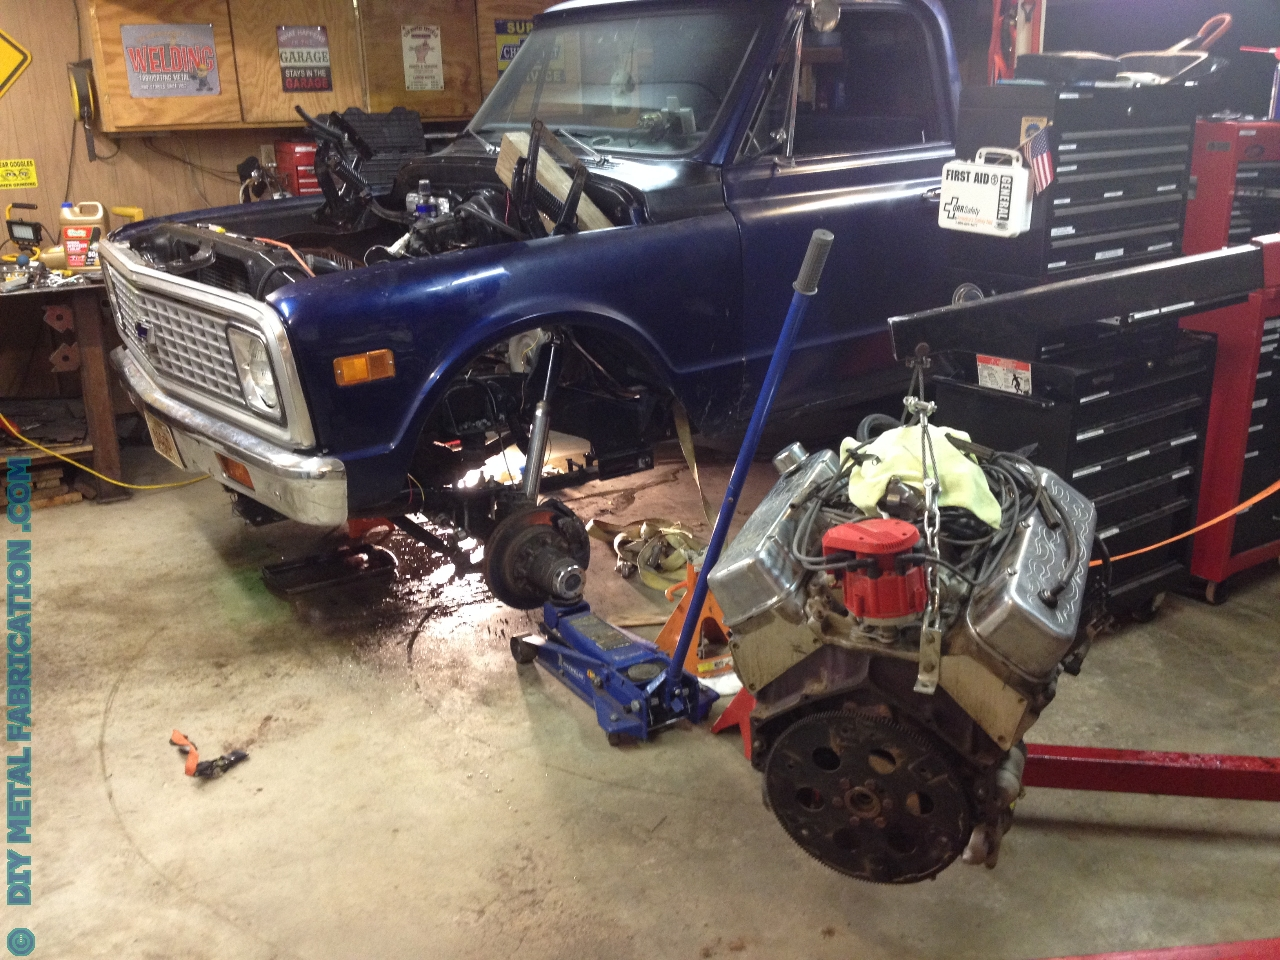 Chevy 1971 Truck >> 5.3 LS Engine Swap into Ol' Blue 1971 Chevy Truck Part 1 – DIY METAL FABRICATION .com